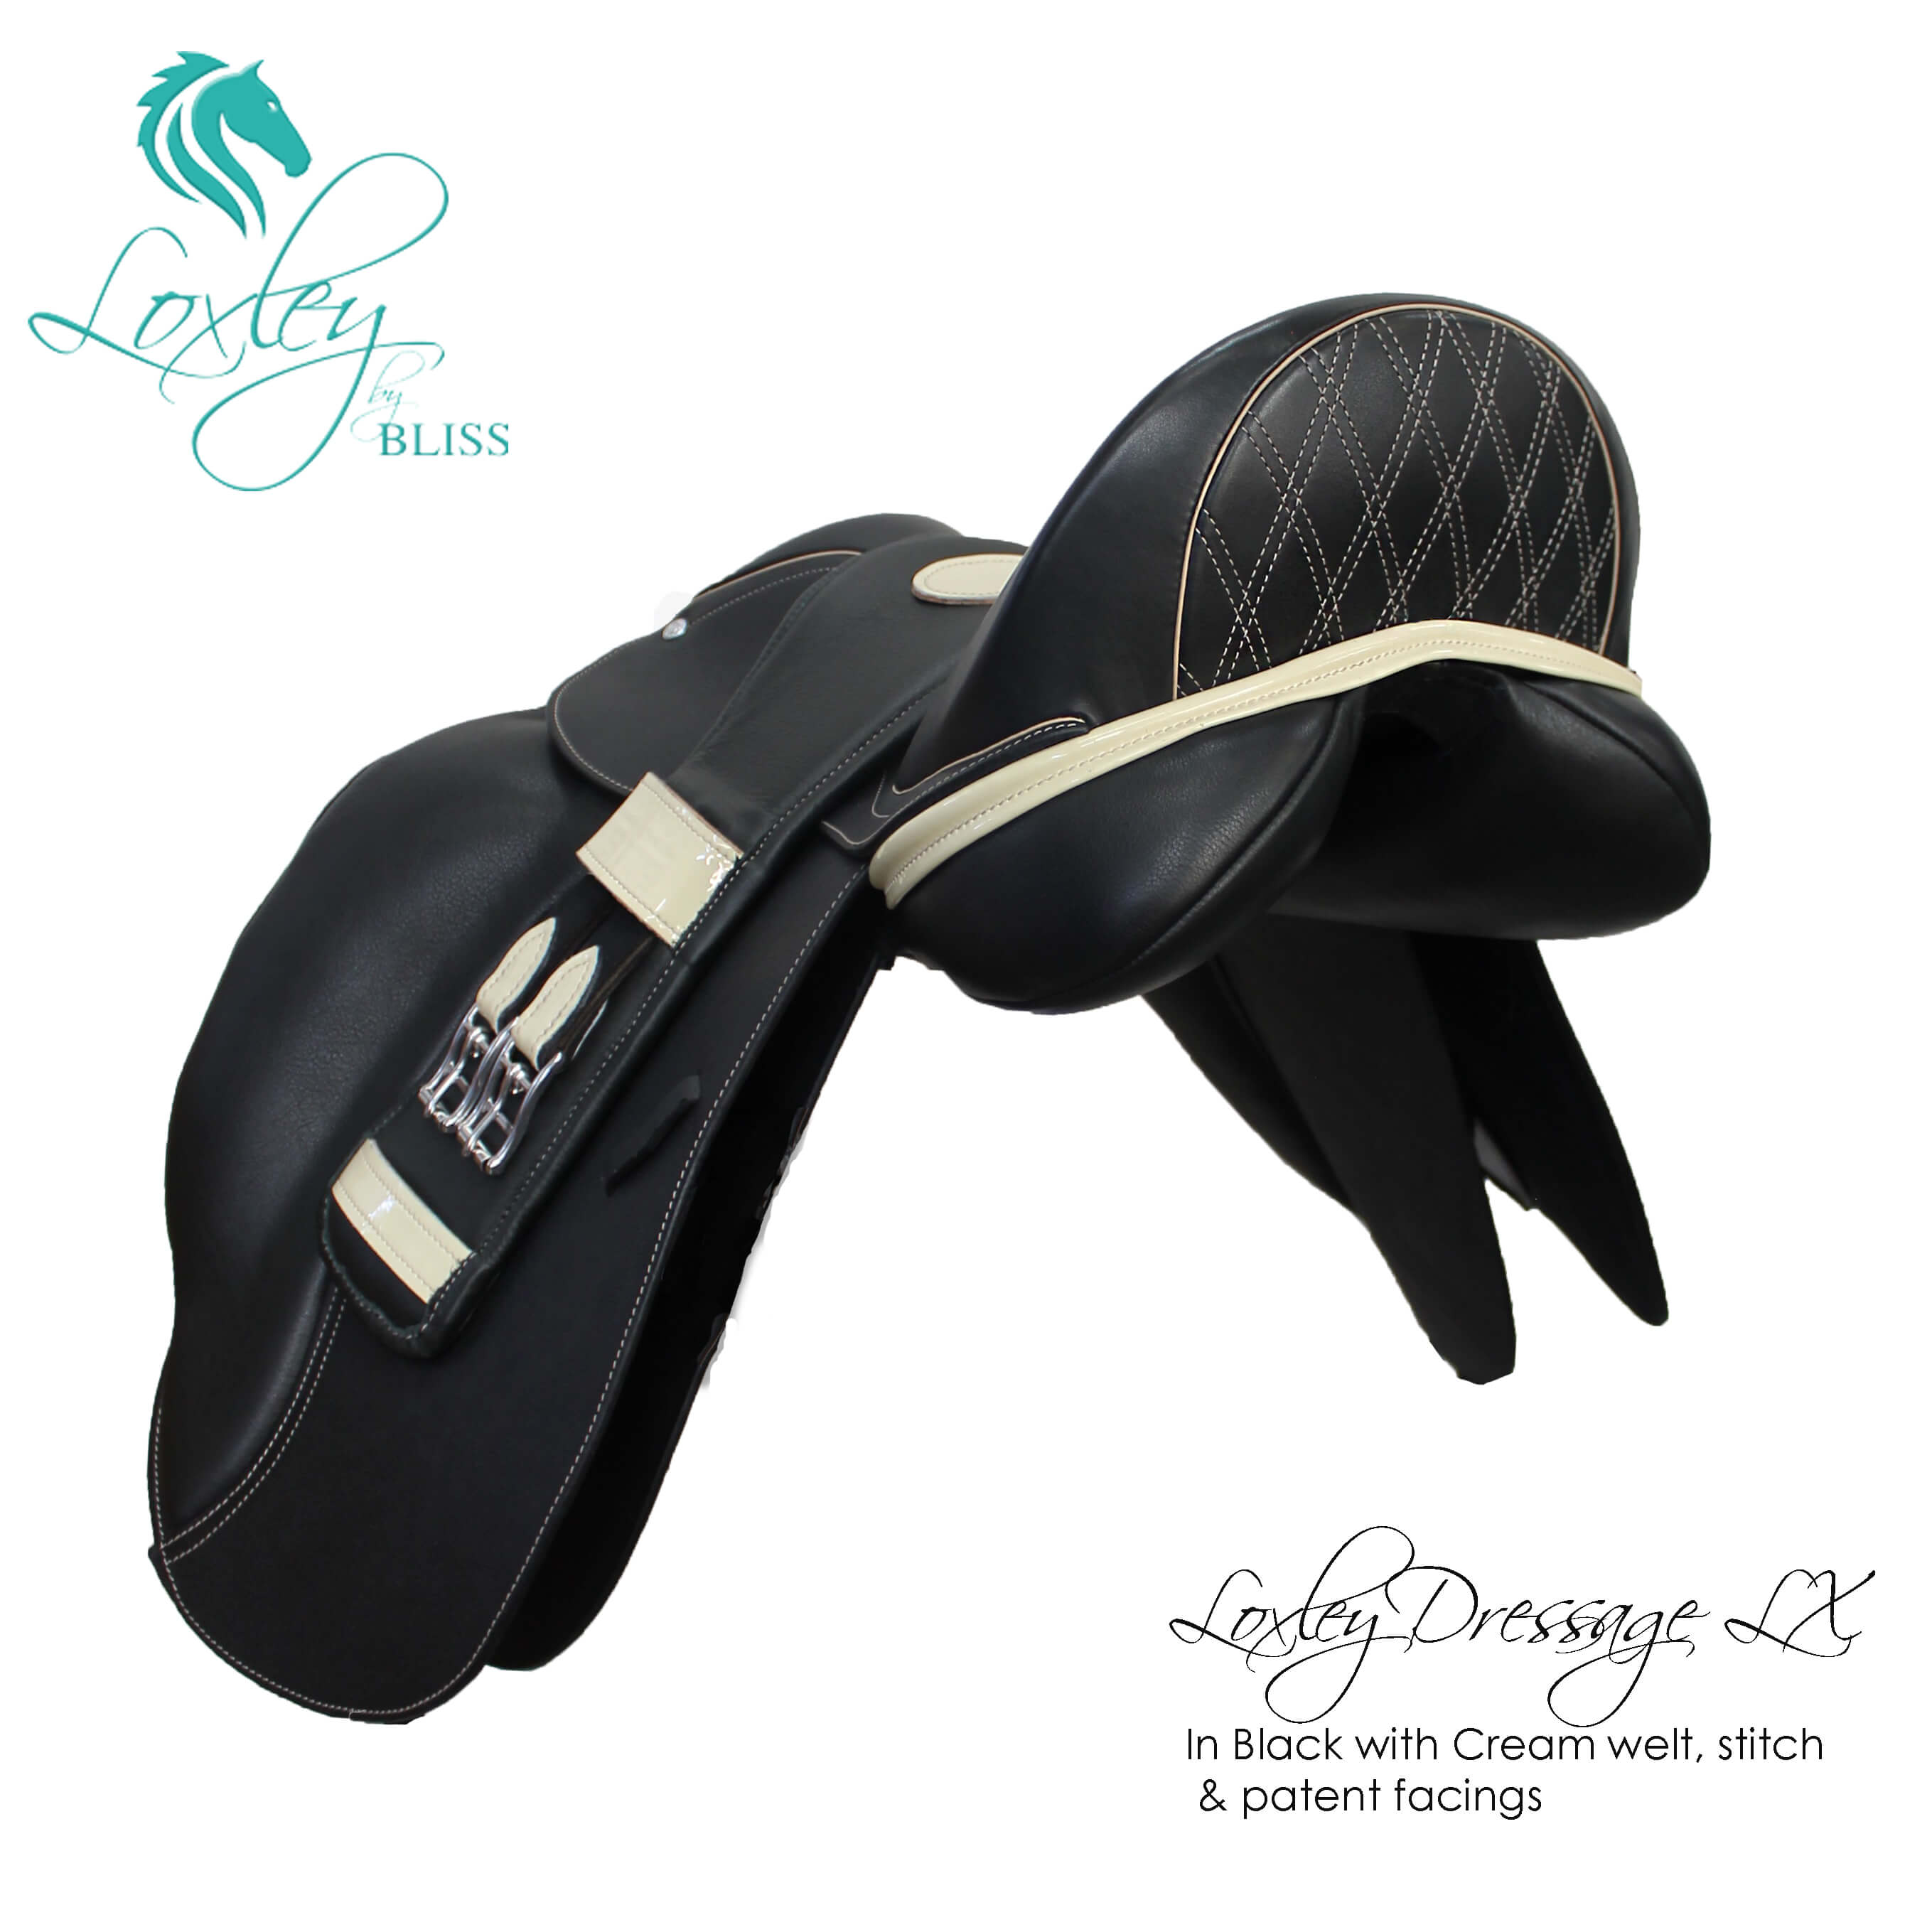 6 Loxley Dressage LX Black Cream patent